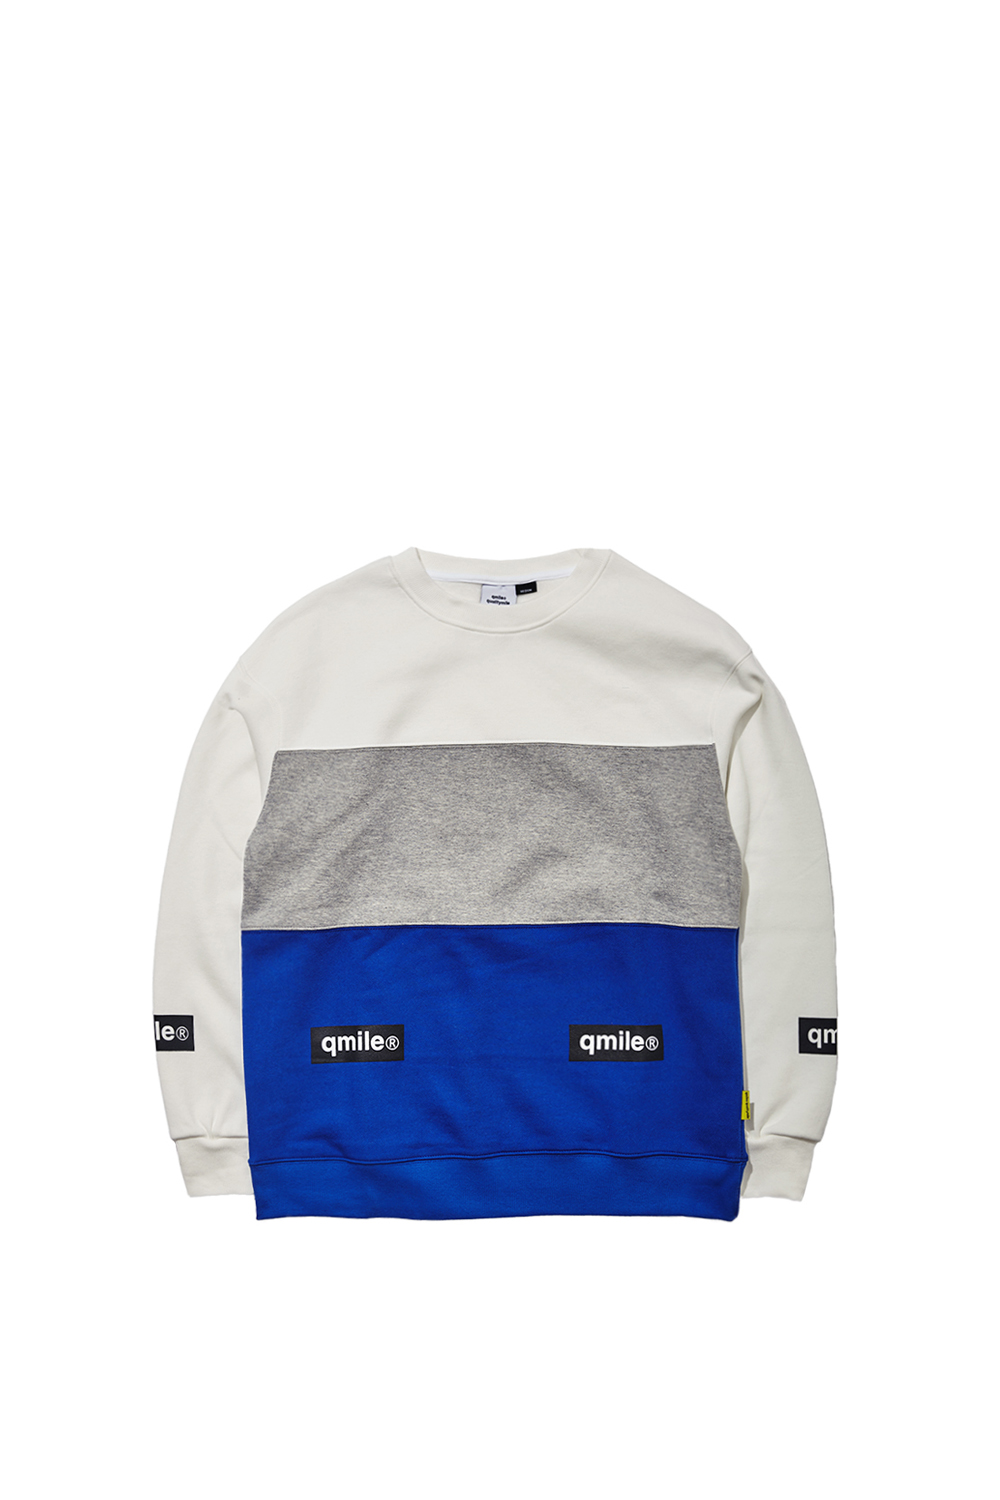 TRIPPLE COLORING CREWNECK | BLUE/GREY/WHITE